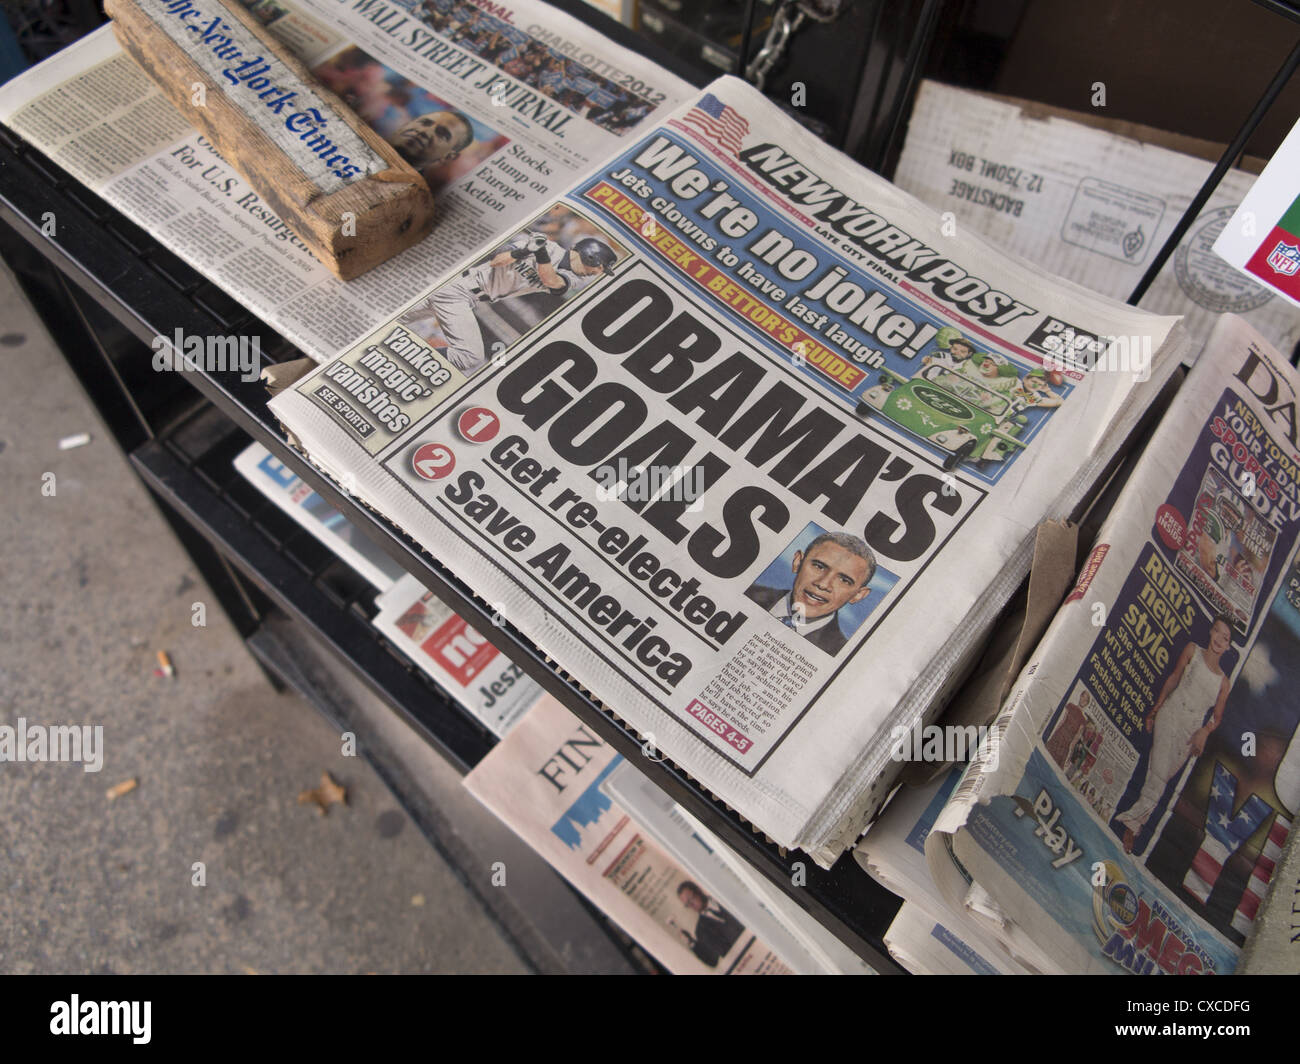 New York Newspaper after Obama speaks at the Democratic Convention 2012. - Stock Image